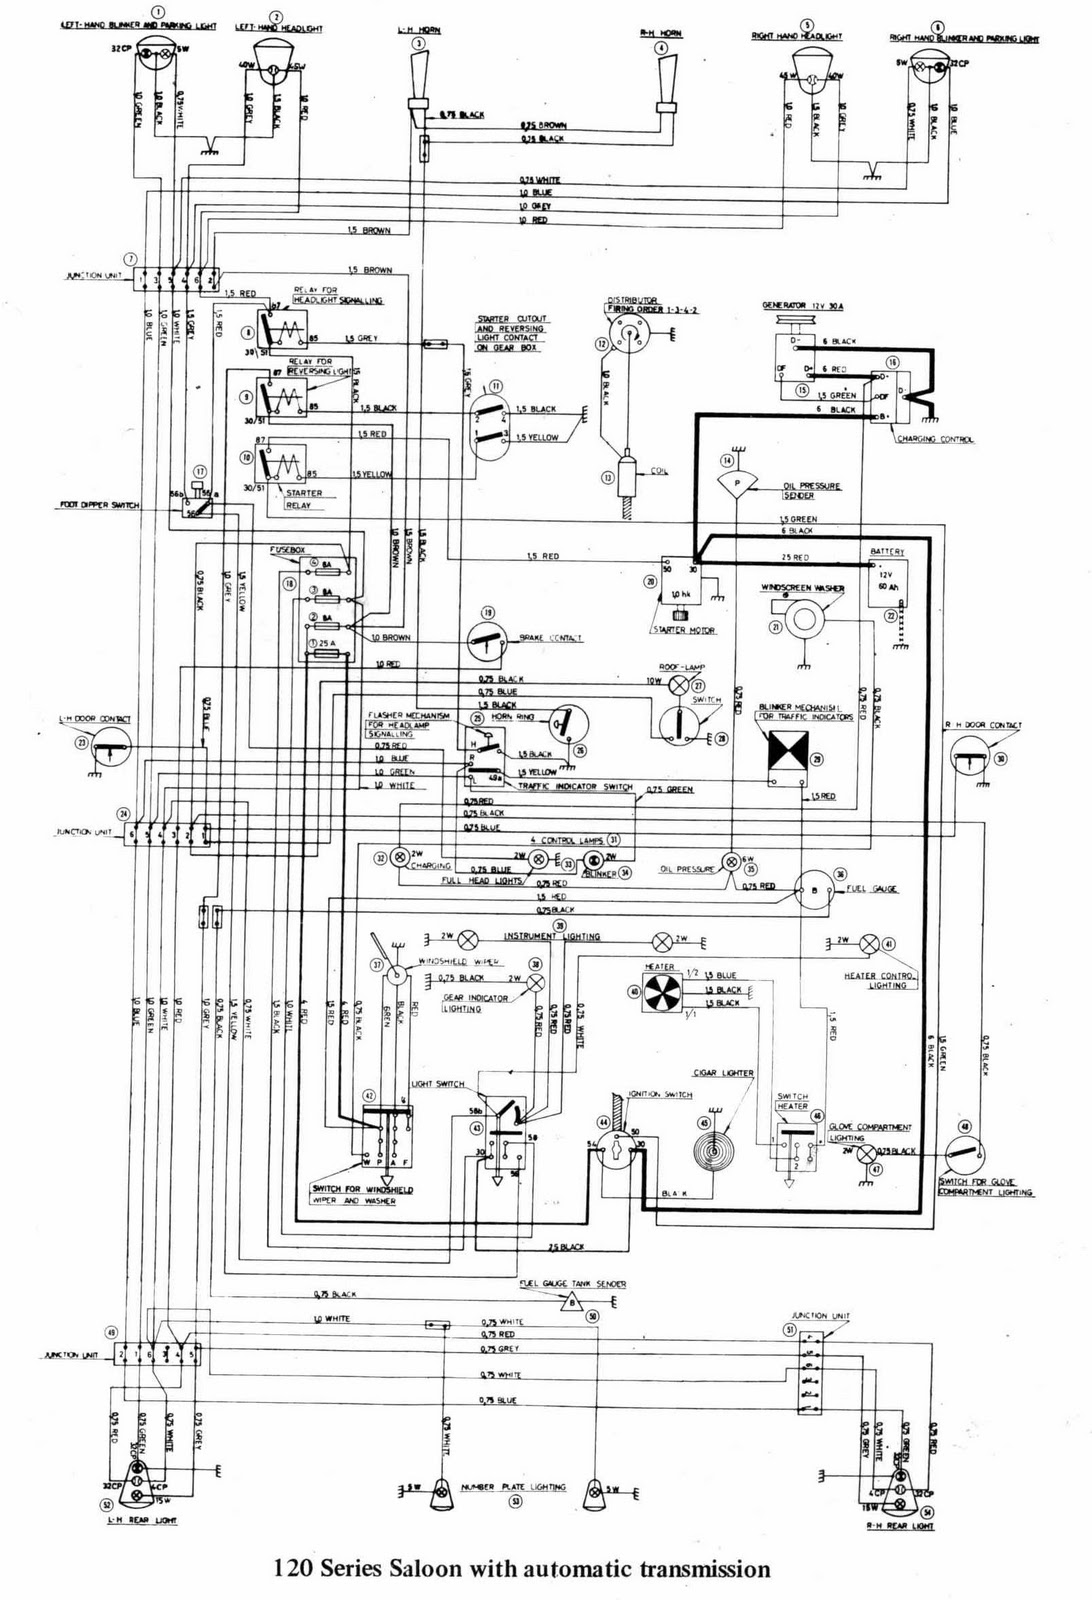 Complete Wiring Diagrams Of Volvo S on Volvo 940 Engine Diagram